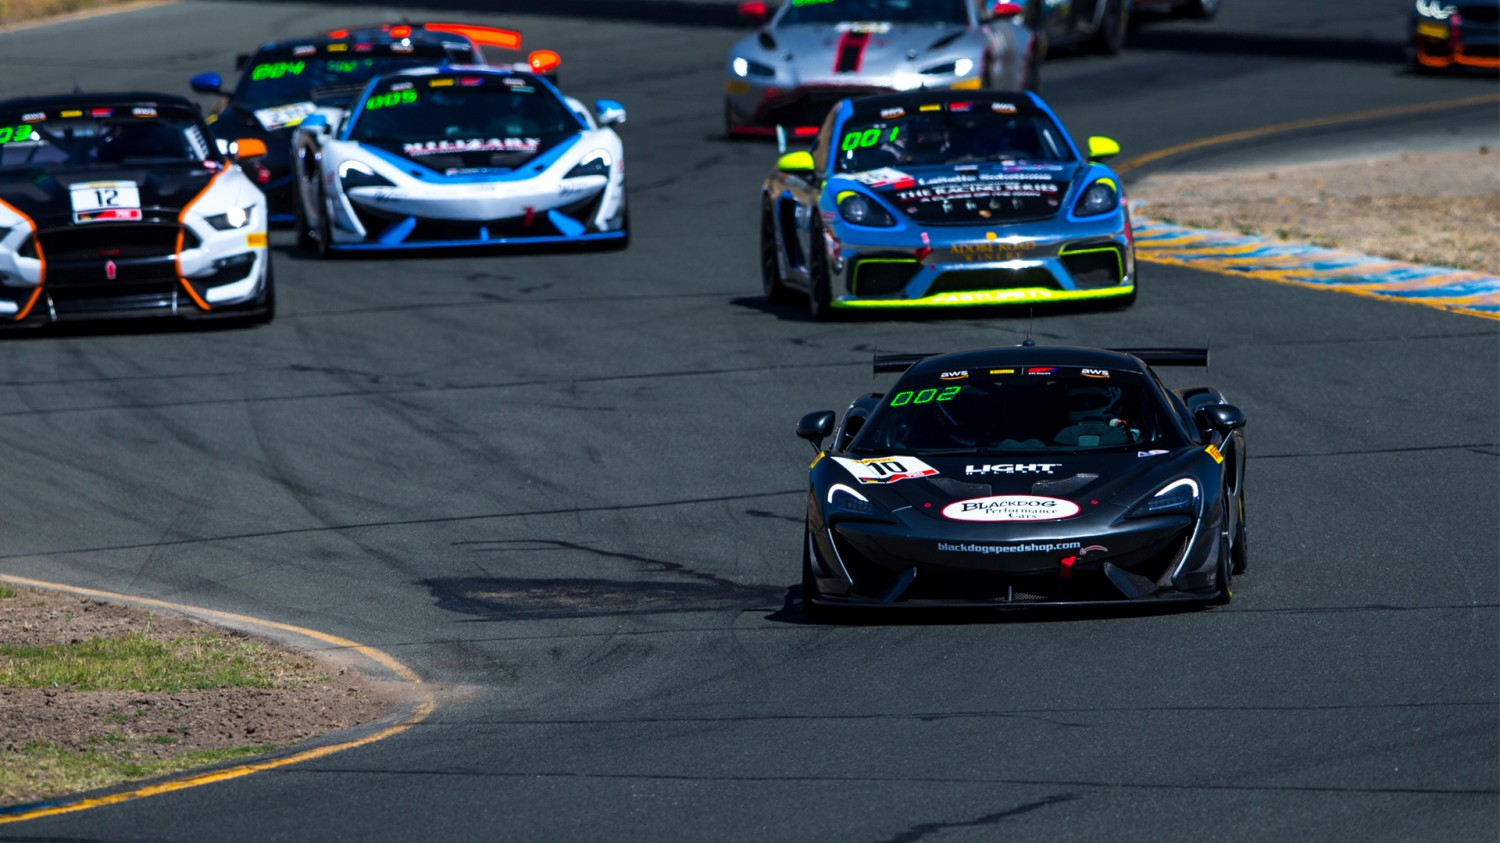 ROLL ON: Cooper, Blackdog Speed Shop Win Again at Sonoma